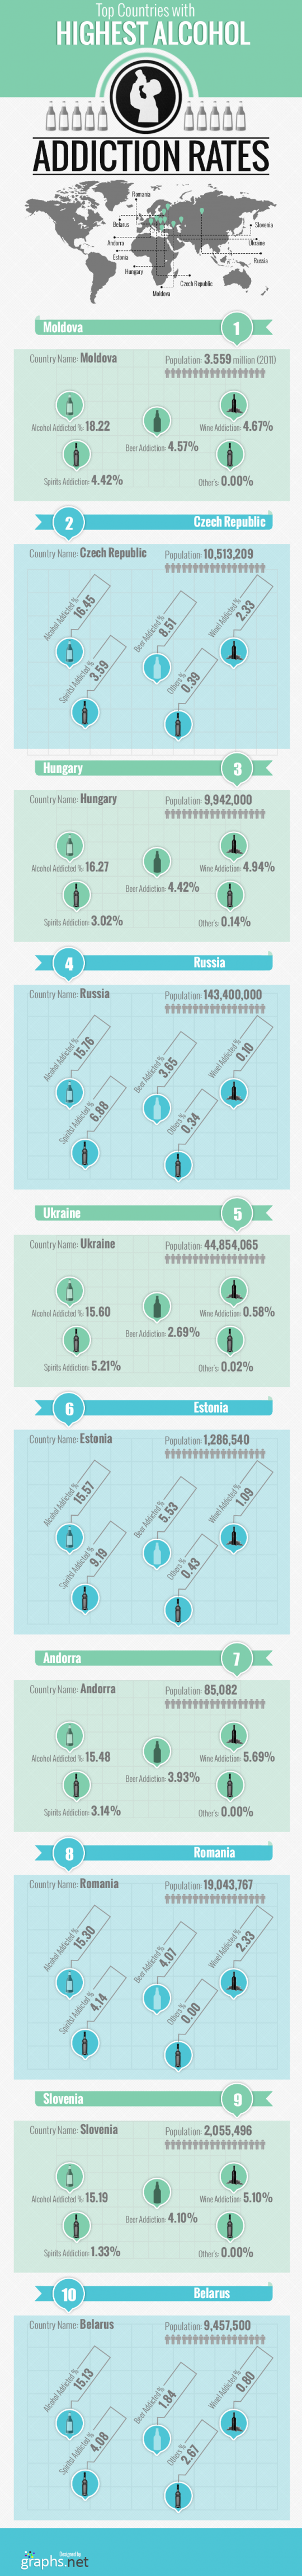 Top countries with highest alcohol addiction rates